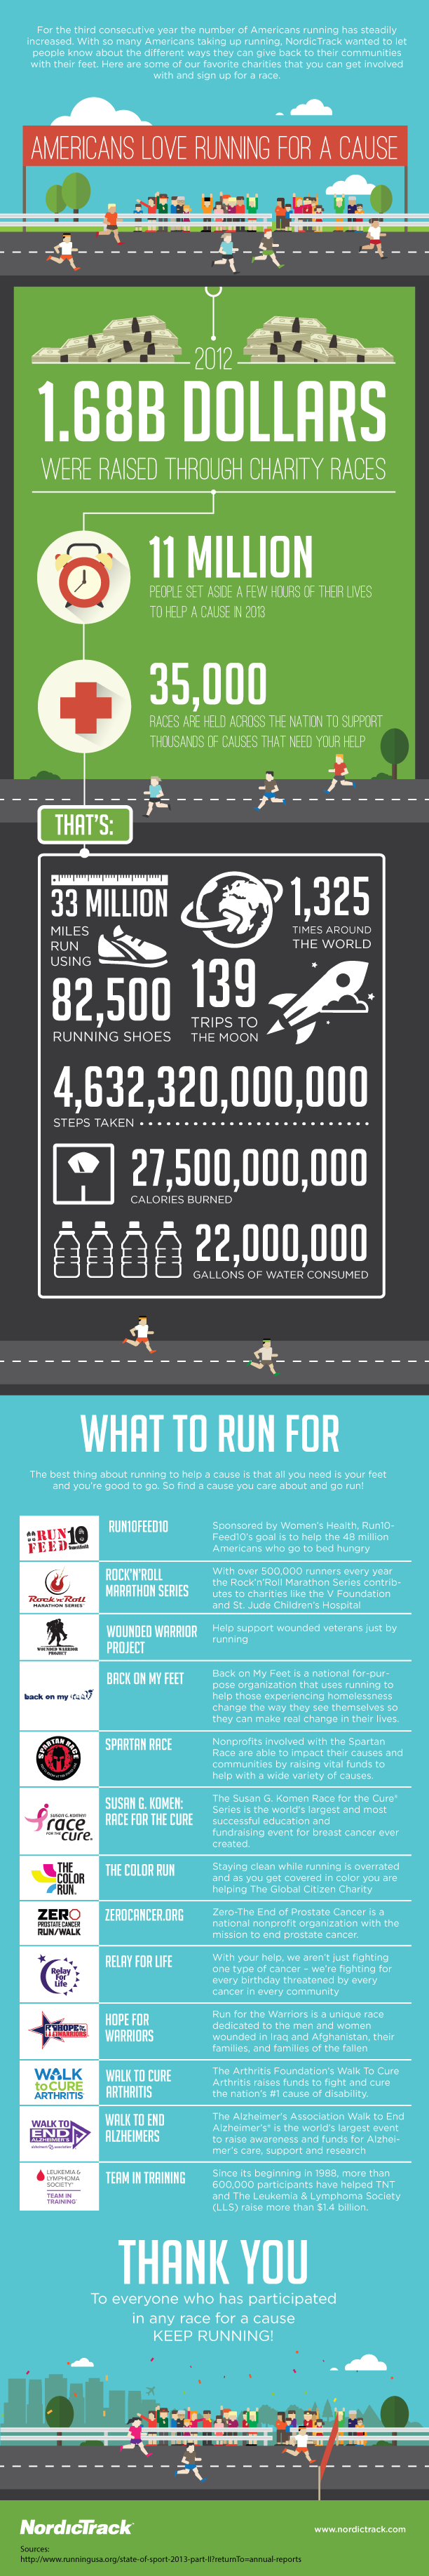 Infographic: Americans Love Running for a Cause #infographic